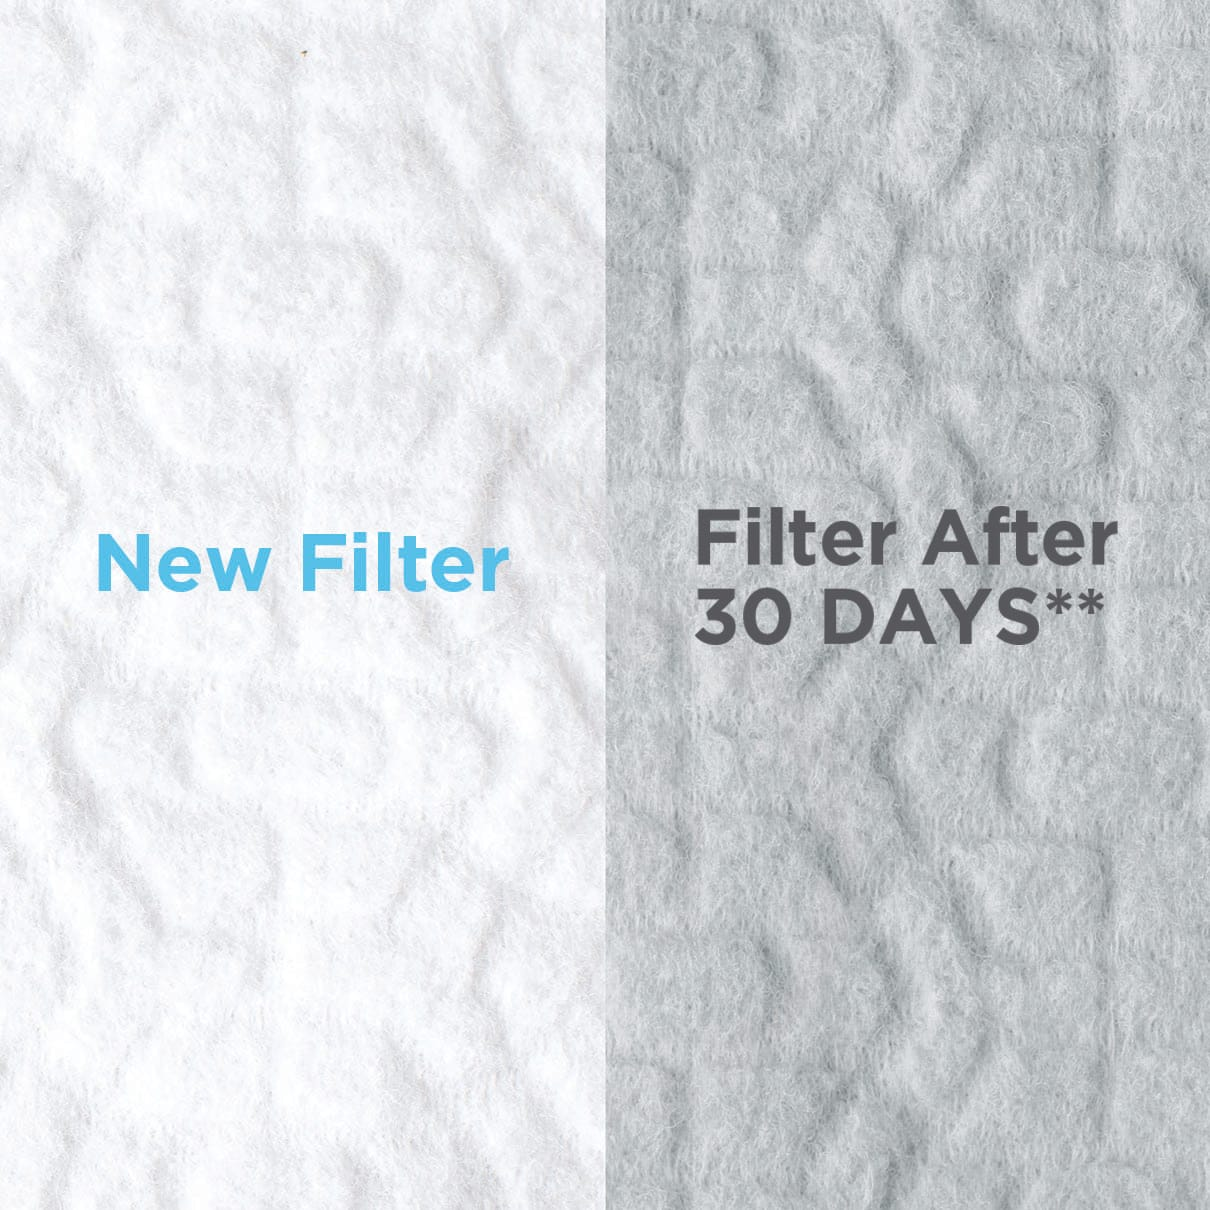 New filter vs filter after 3 days